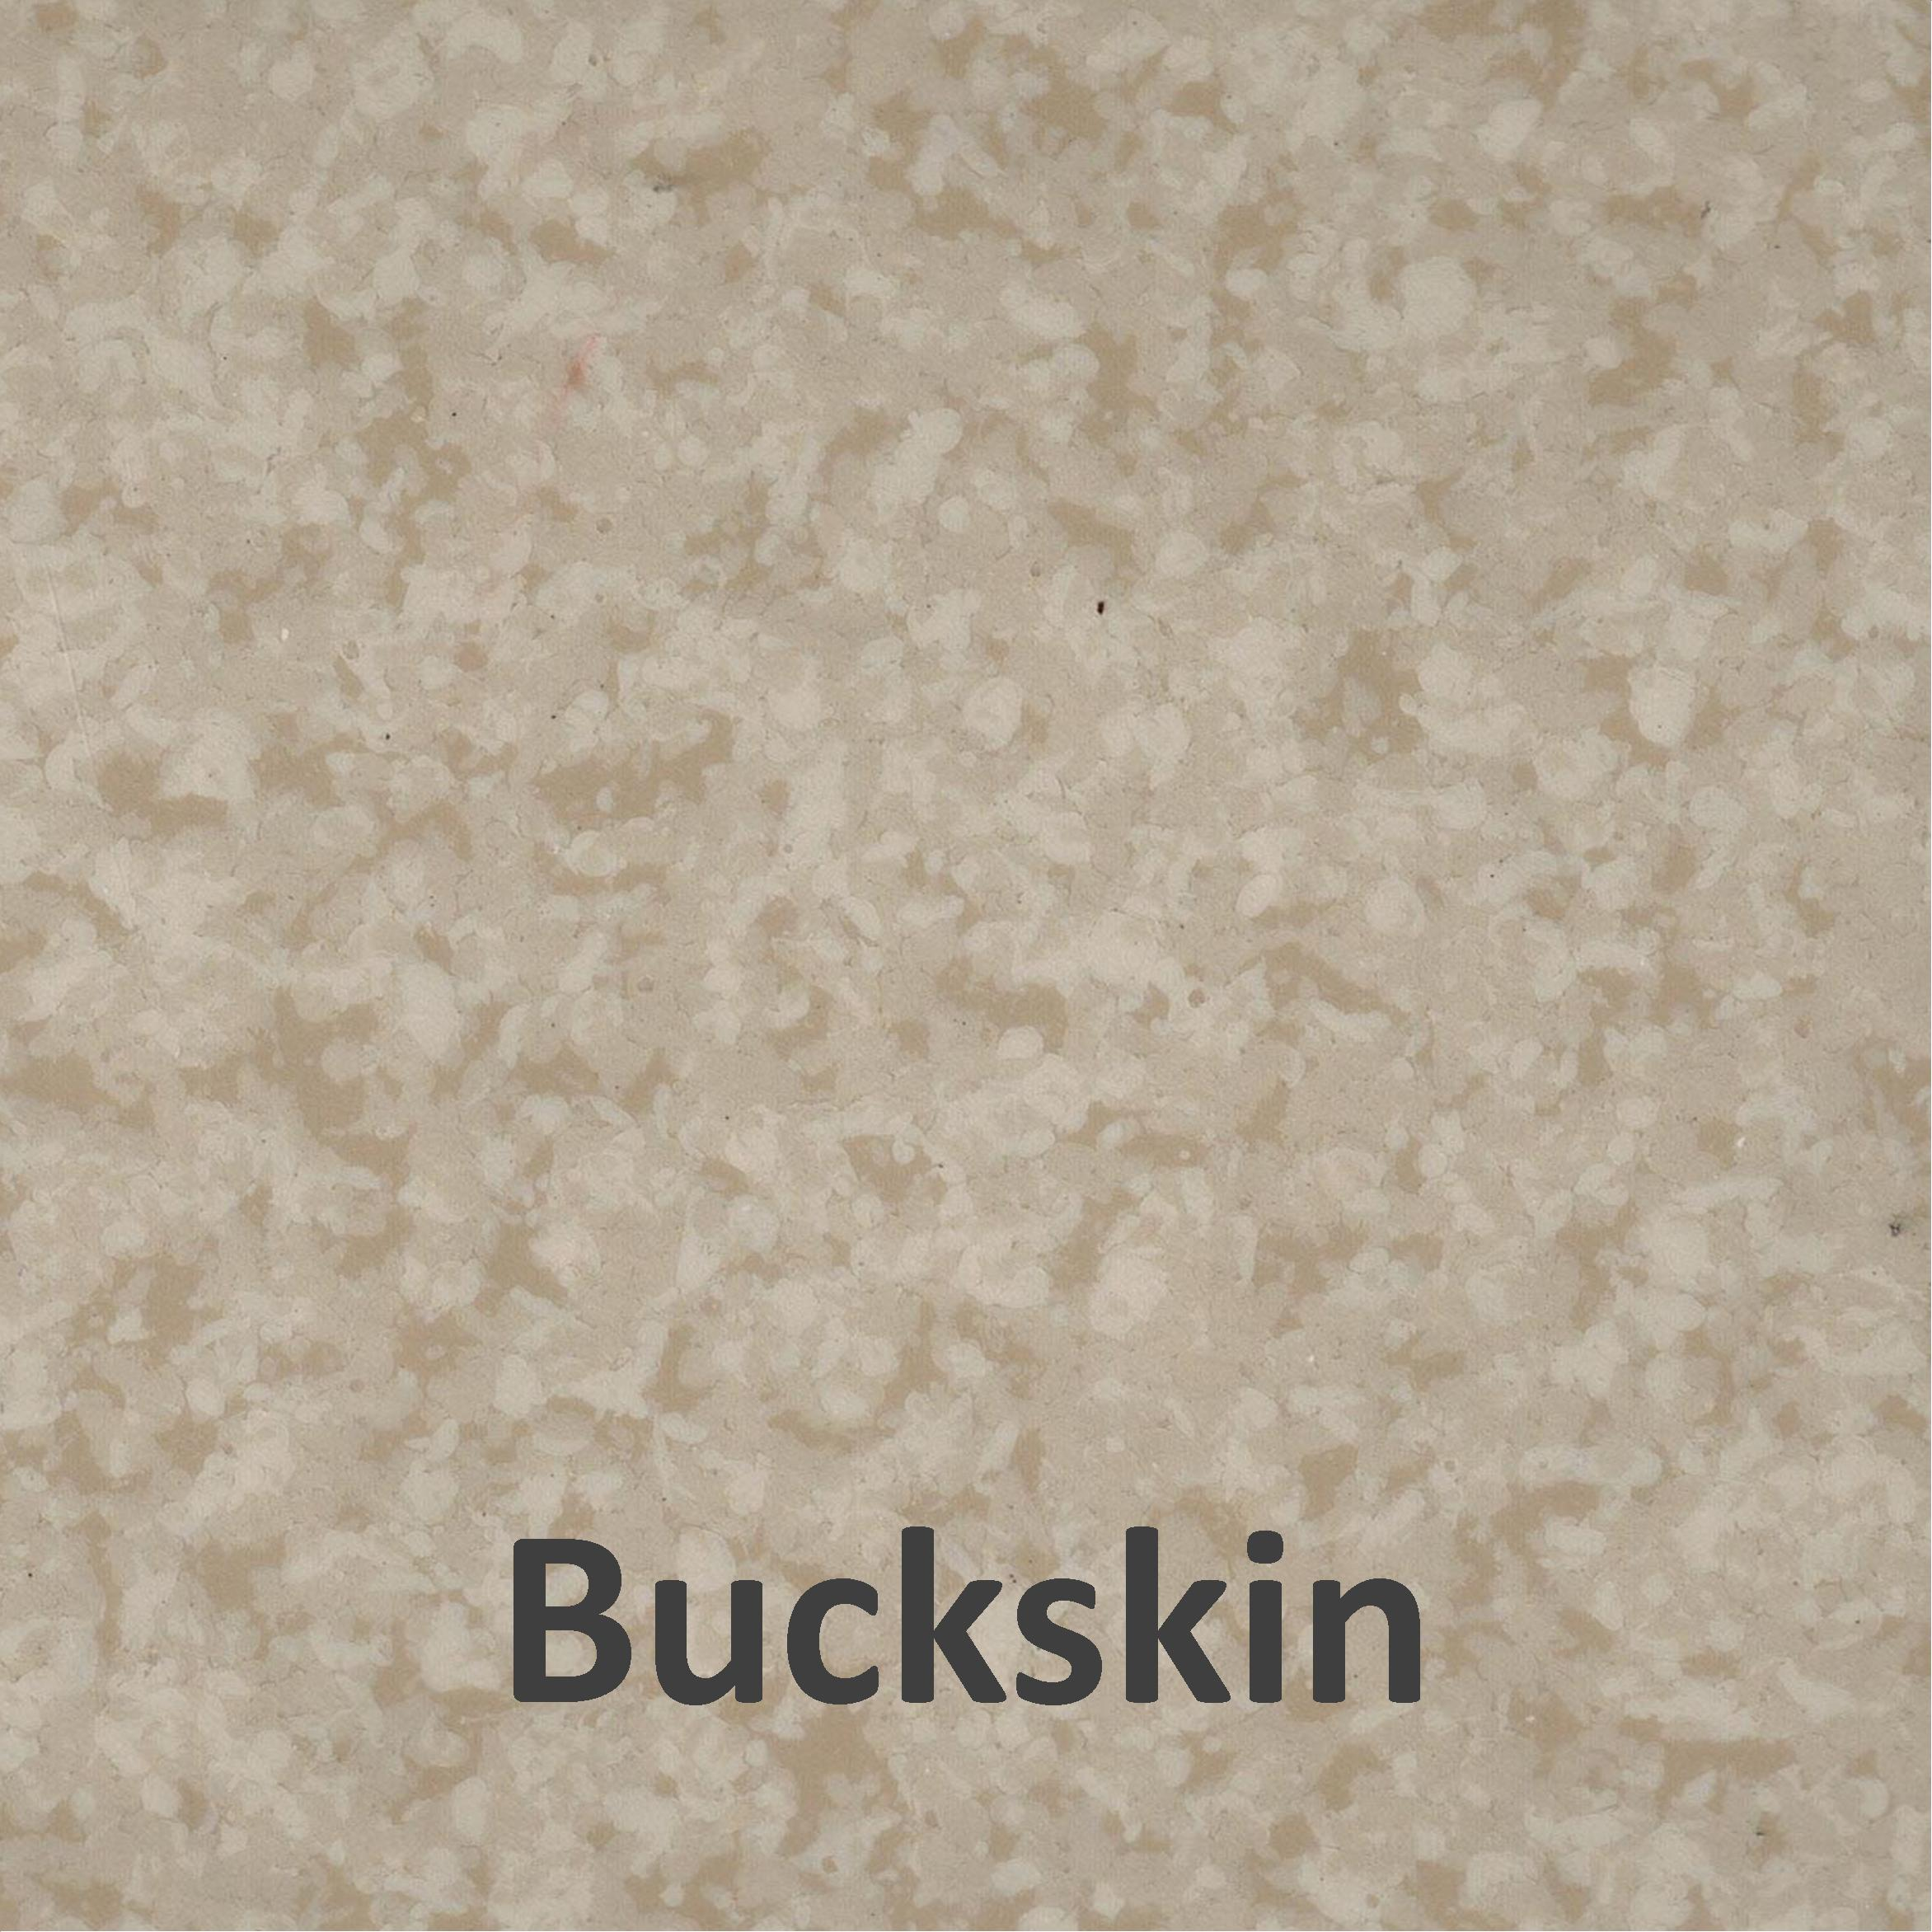 buckskin-label.jpg